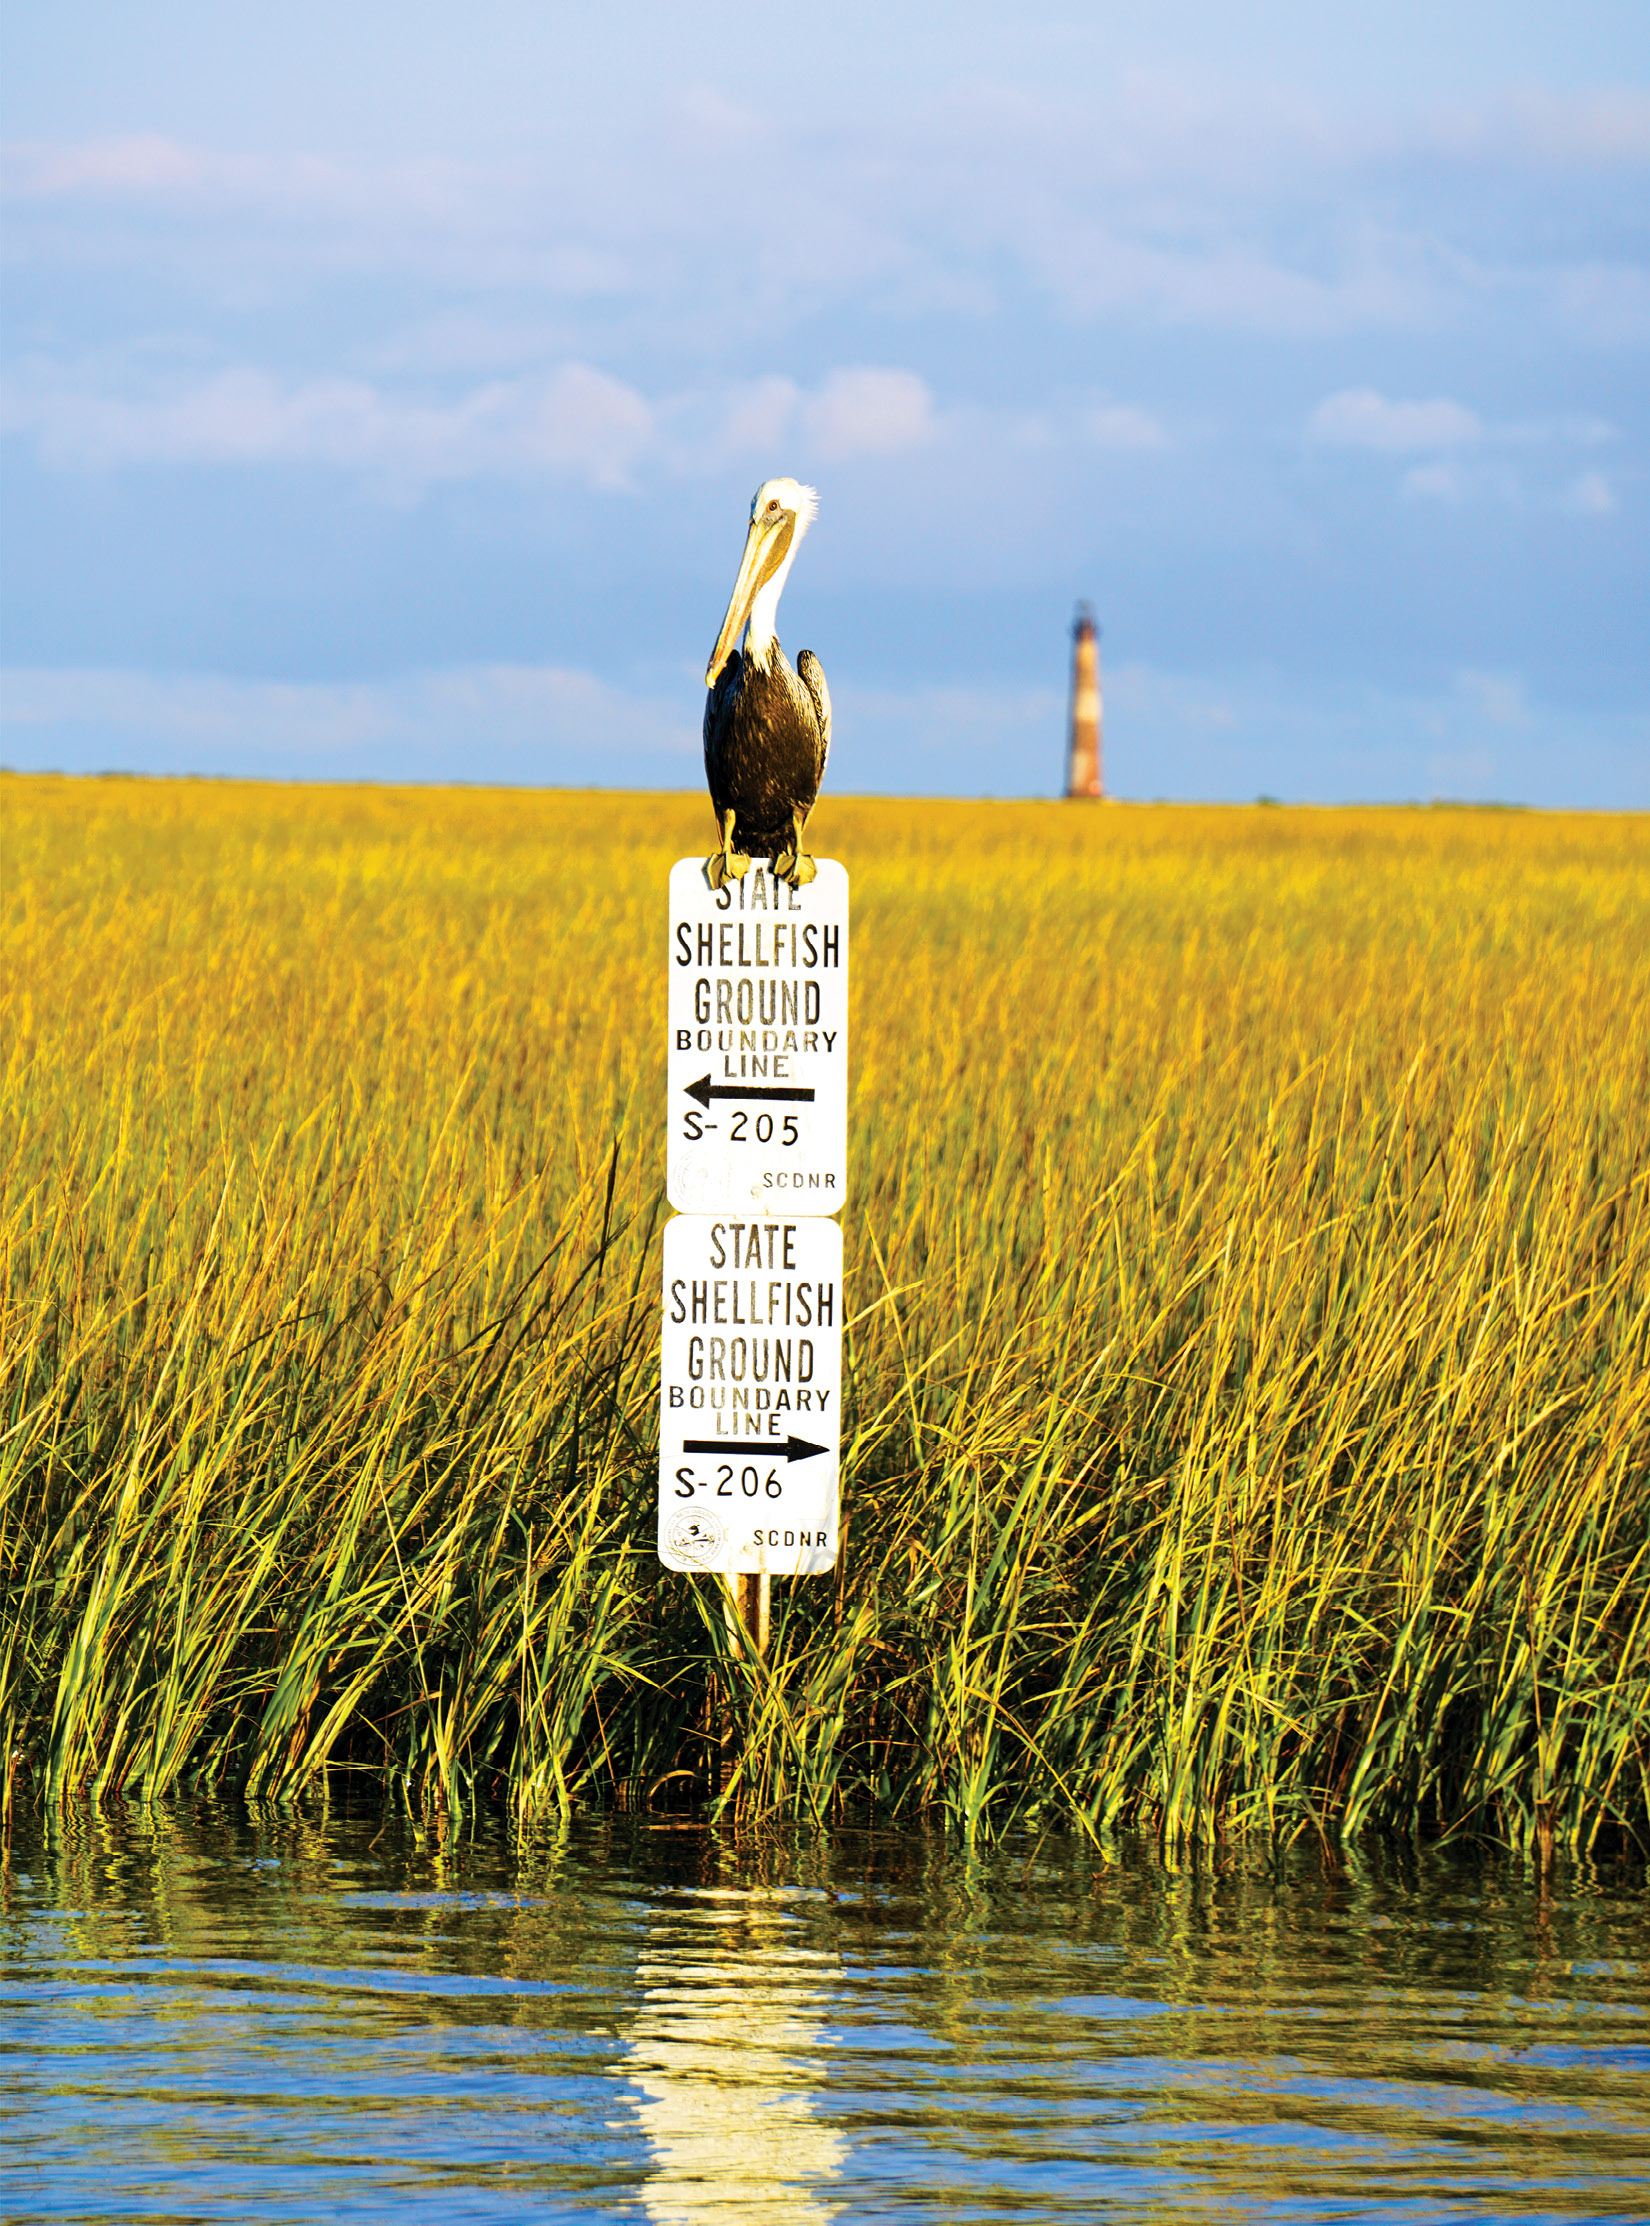 All oyster leases are protected, monitored, and managed by the state's Department of Natural Resources and are marked accordingly.